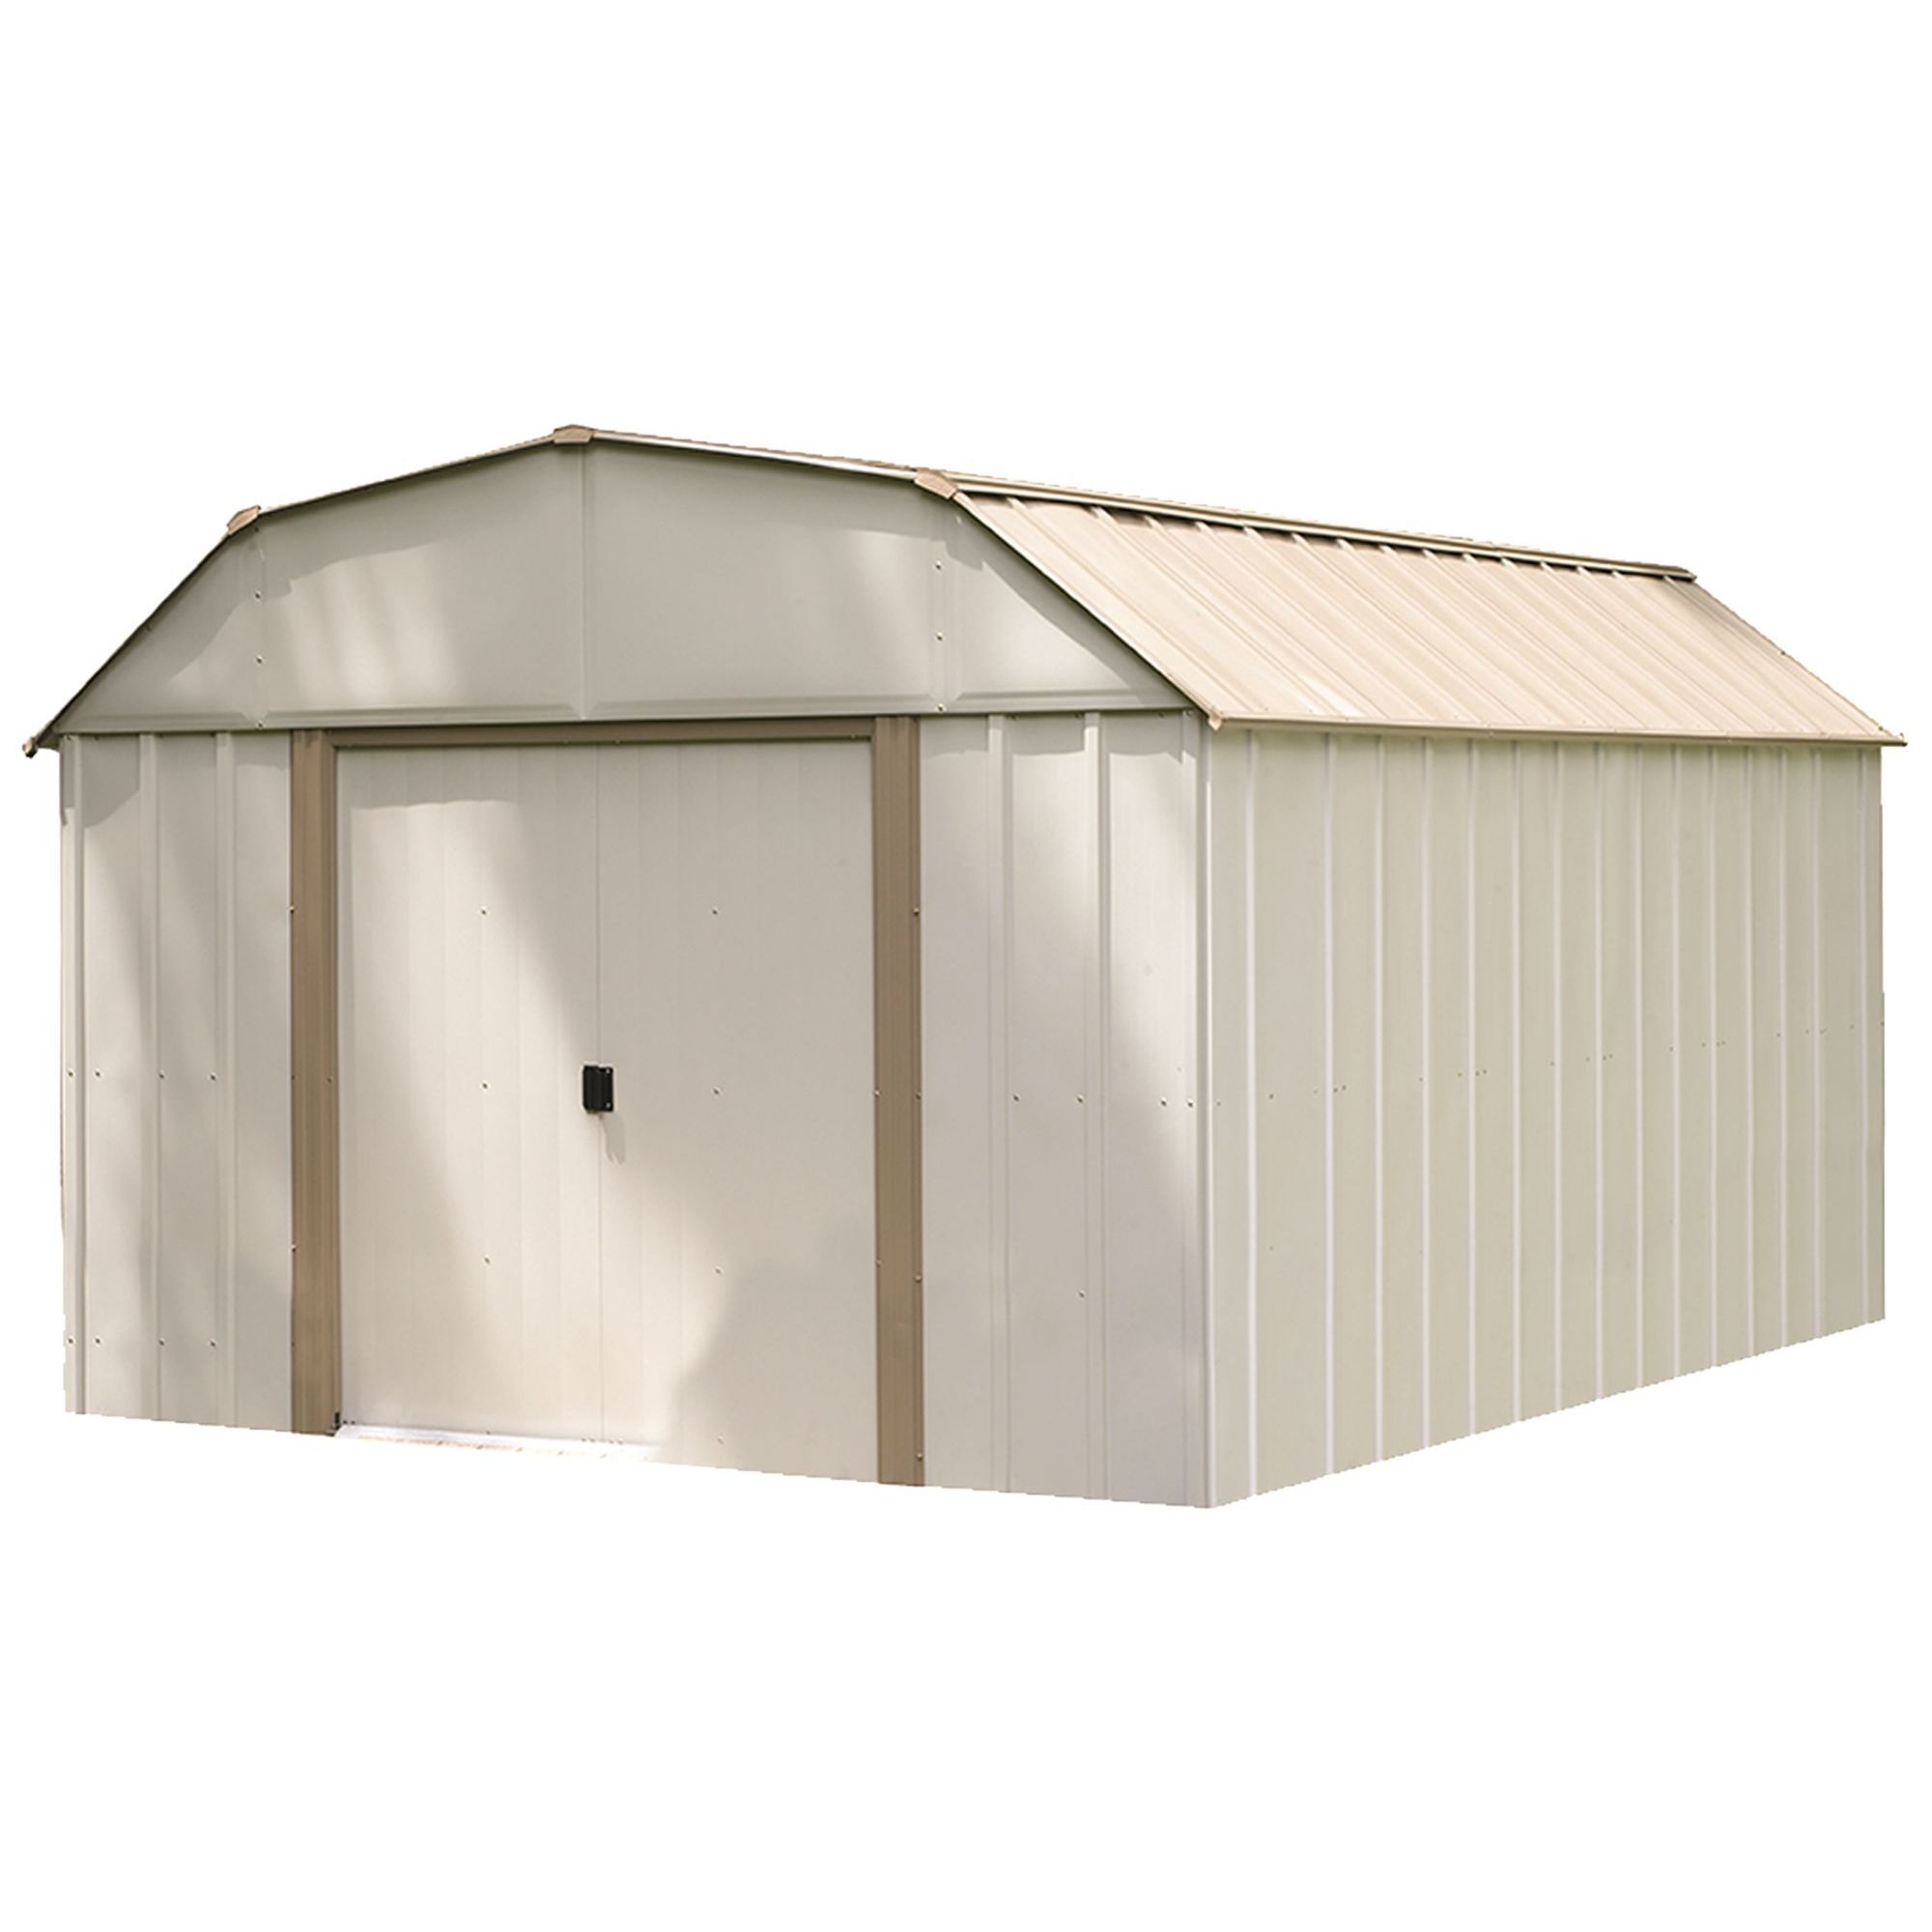 10 X 14 Ft Barn Style Taupe Eggshell Galvanized Steel